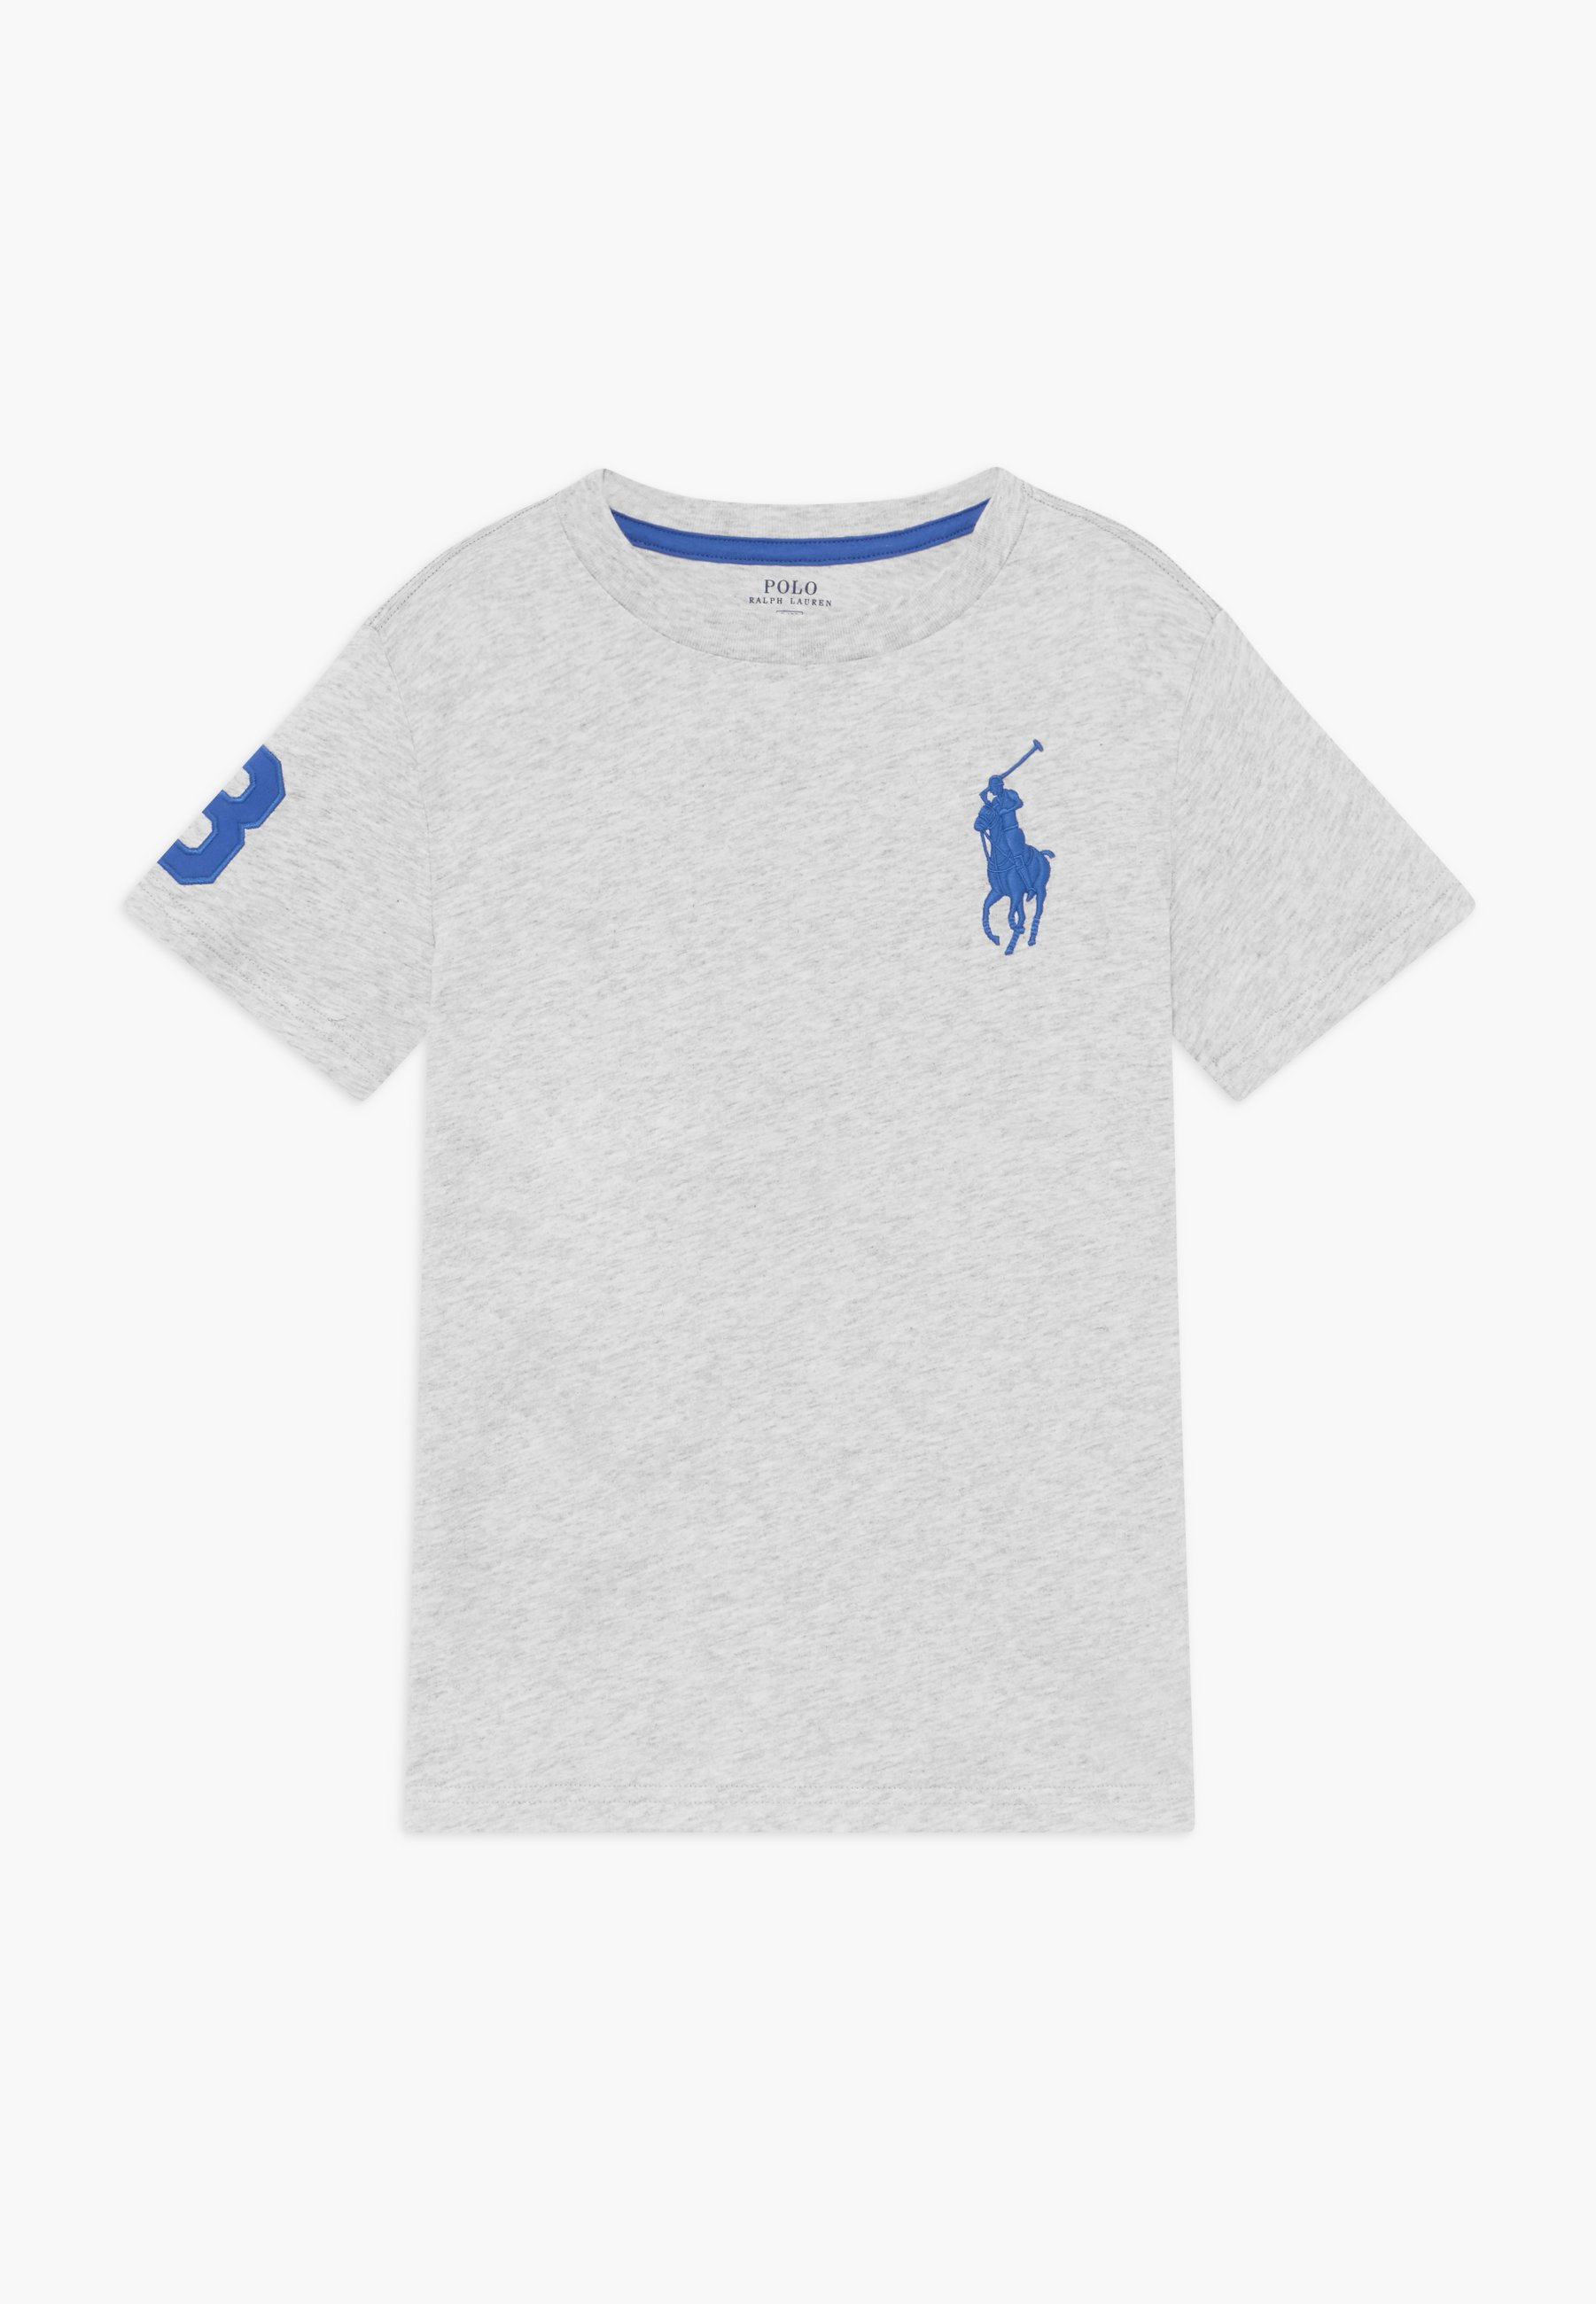 Outlet Wholesale Polo Ralph Lauren Print T-shirt - light smoke heather | kids's clothing 2020 Im536